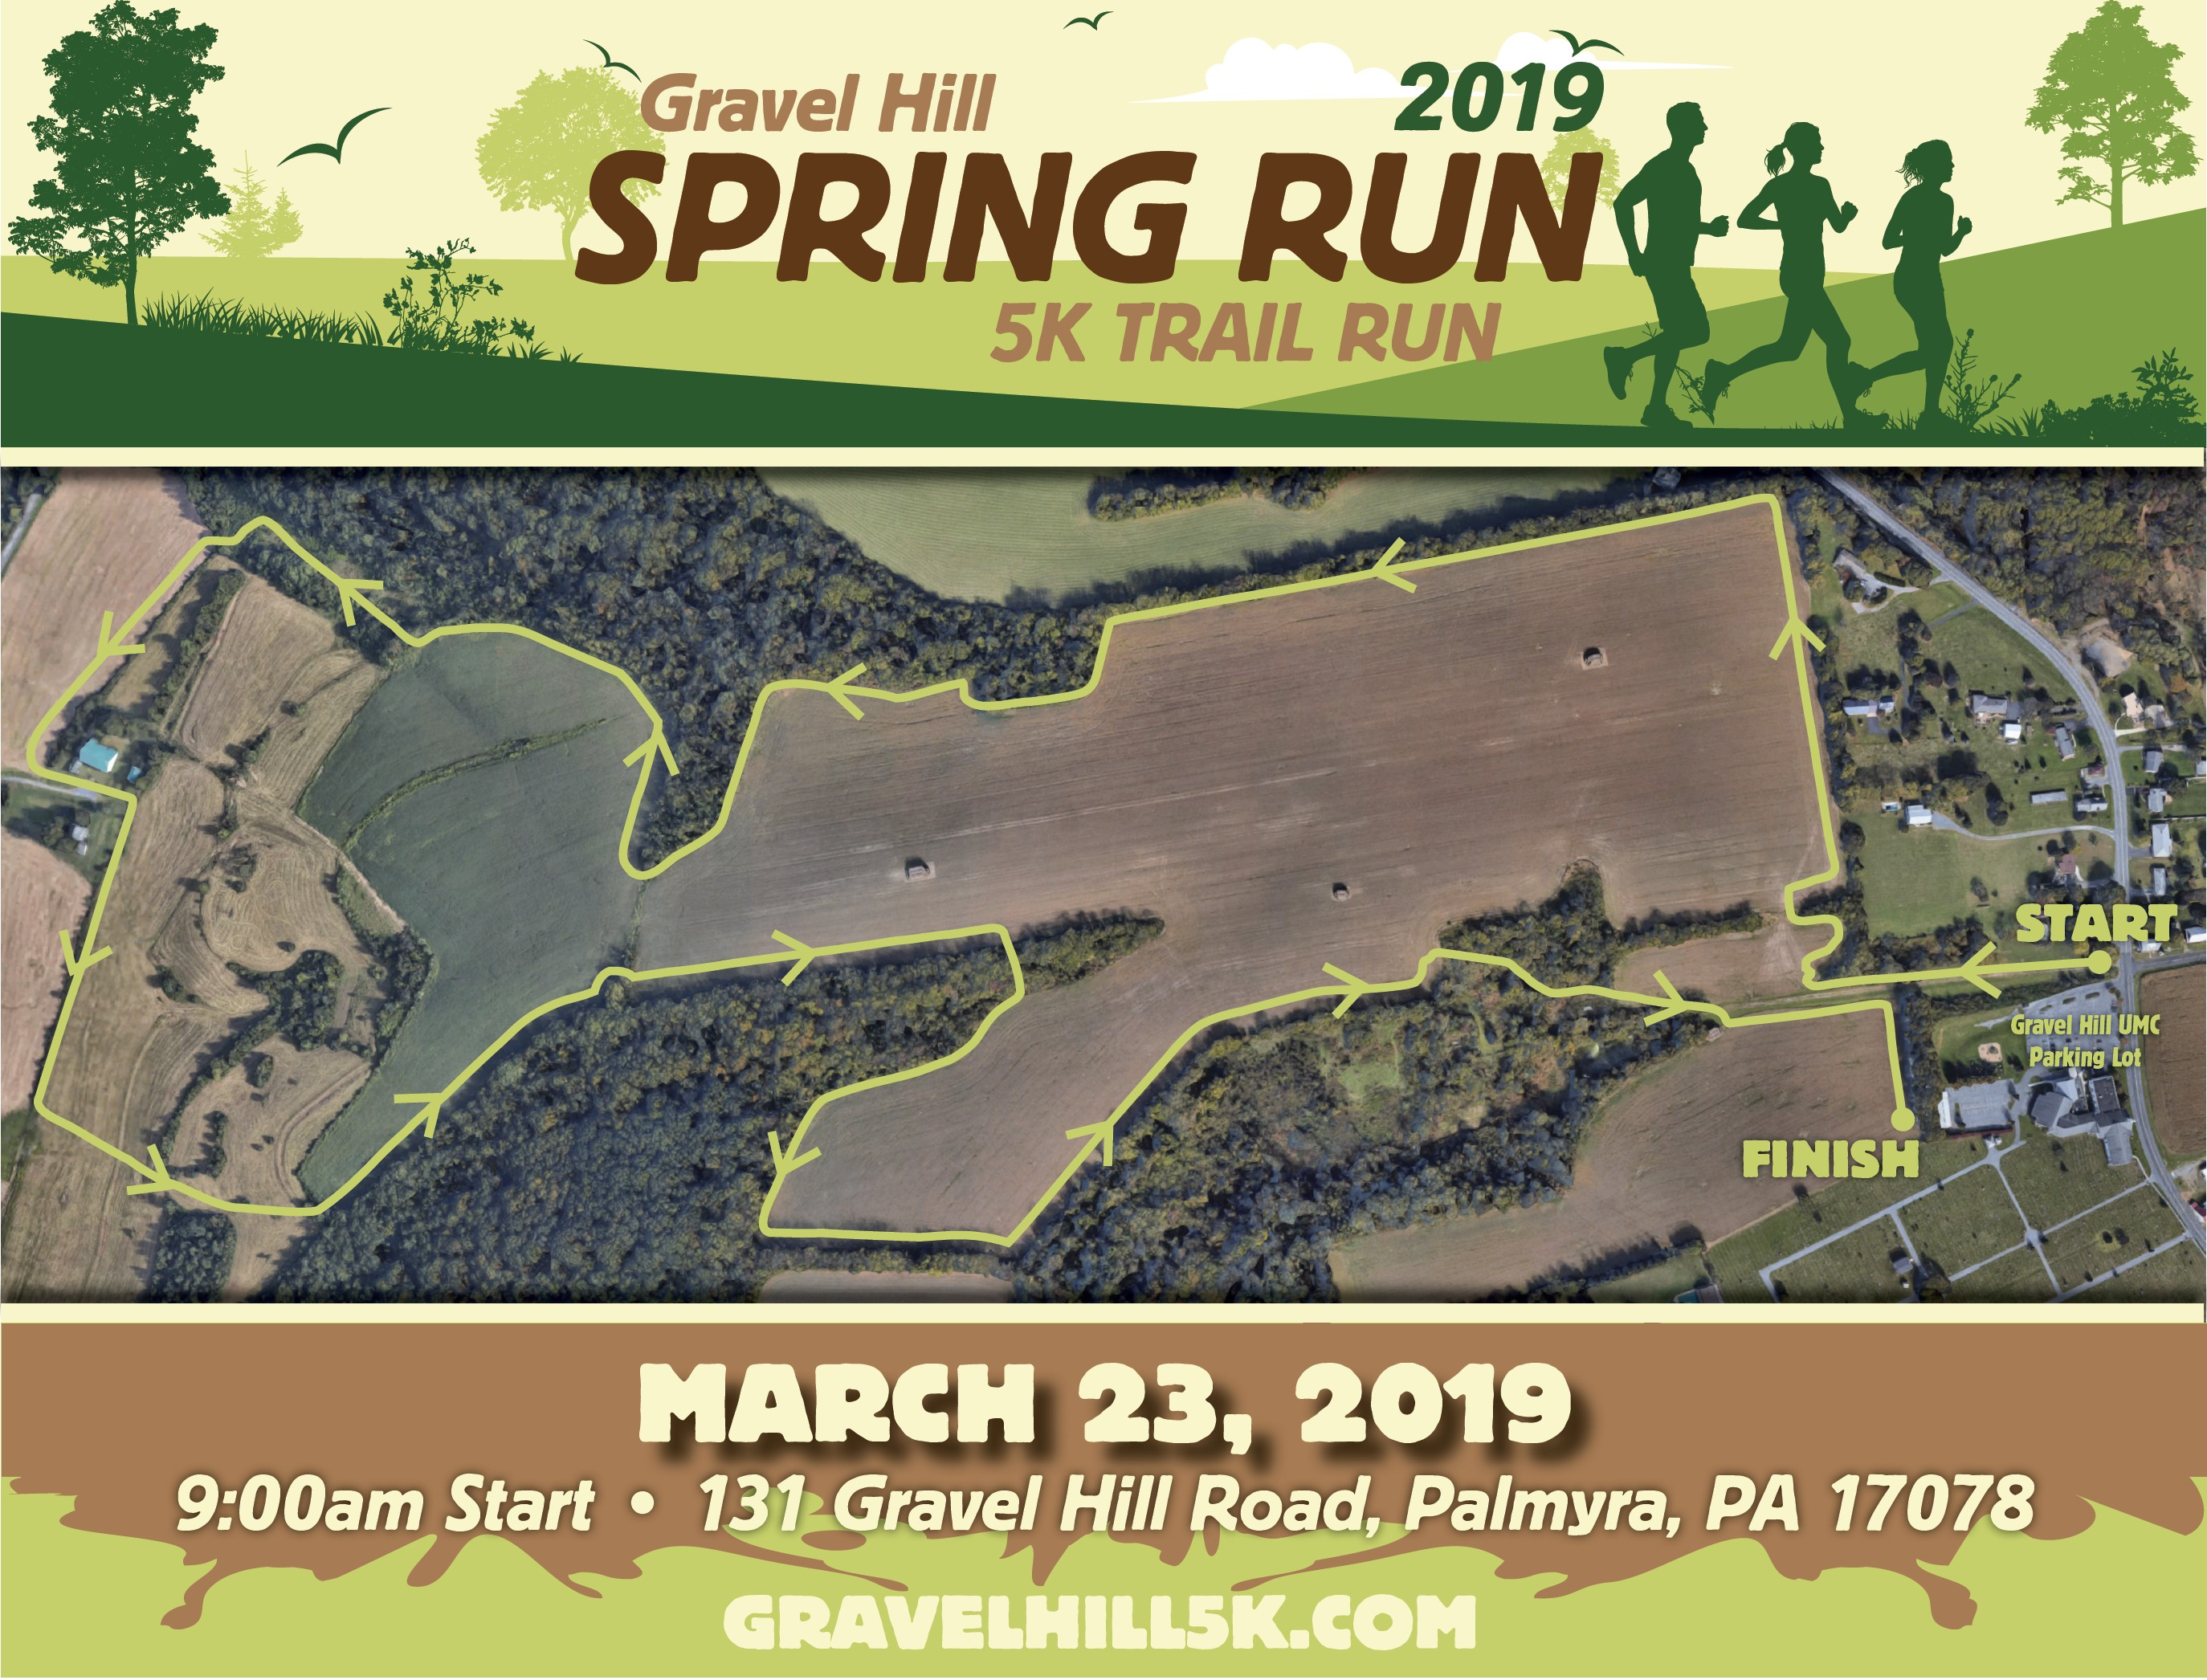 March 2019 Calendar Landscape Más Reciente Gravel Hill Spring Run 5k Ghumc Of March 2019 Calendar Landscape Más Recientes 2010 Calendar